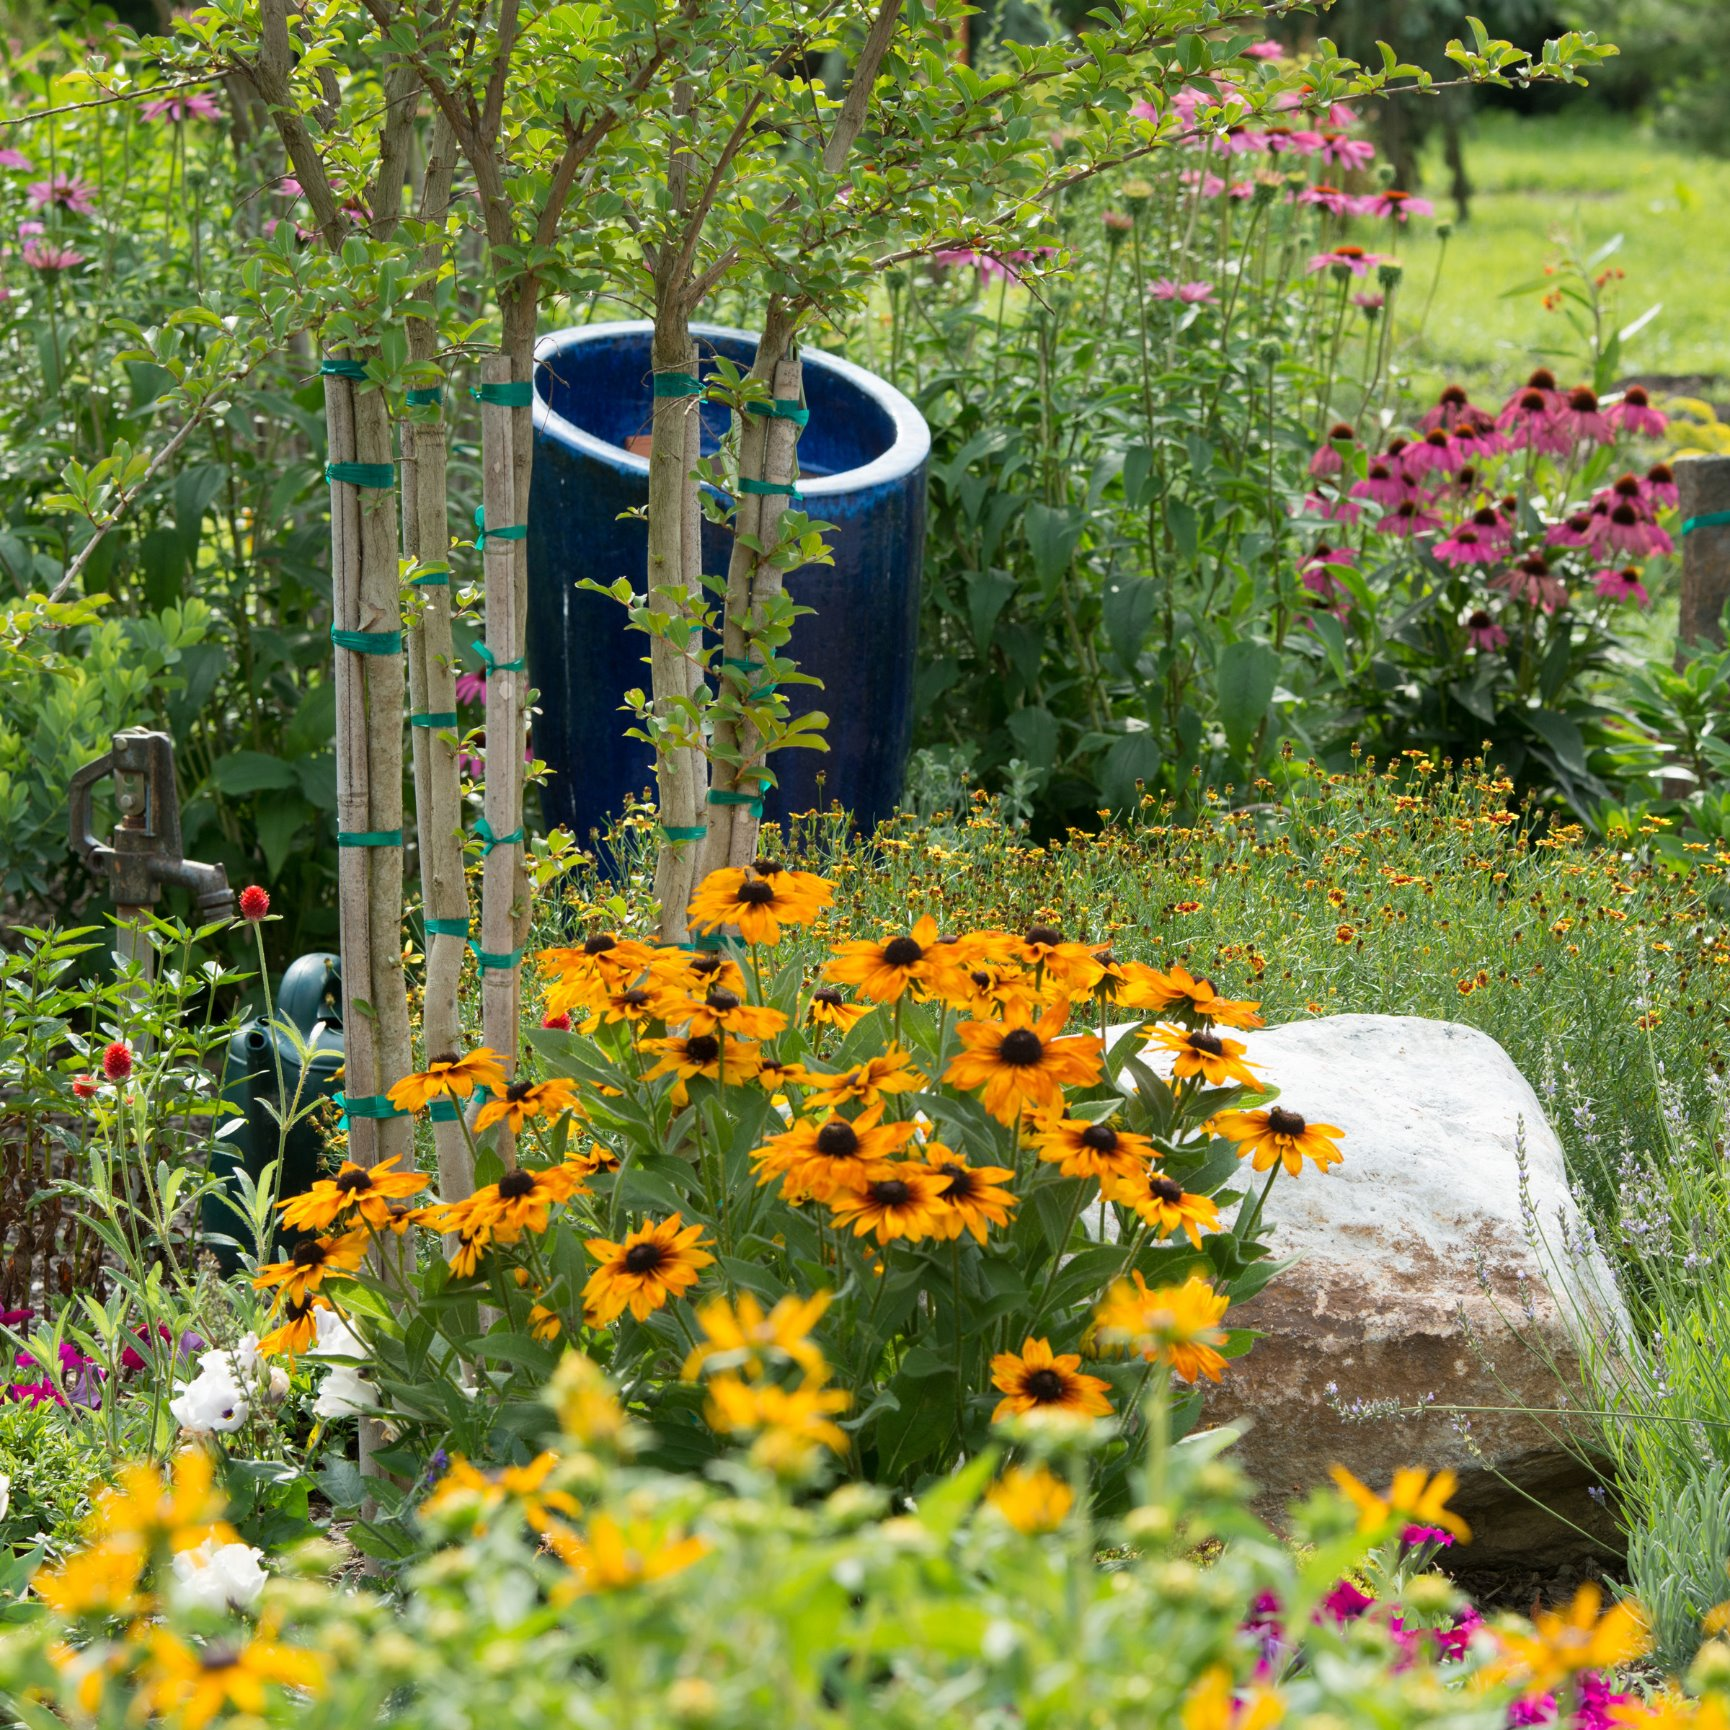 Jean Specifically Designed The Monarch Way Station For Monarchs But  Encourages Other Butterflies, Bees And Hummingbirds Too. The Watch For  Caterpillars On ...